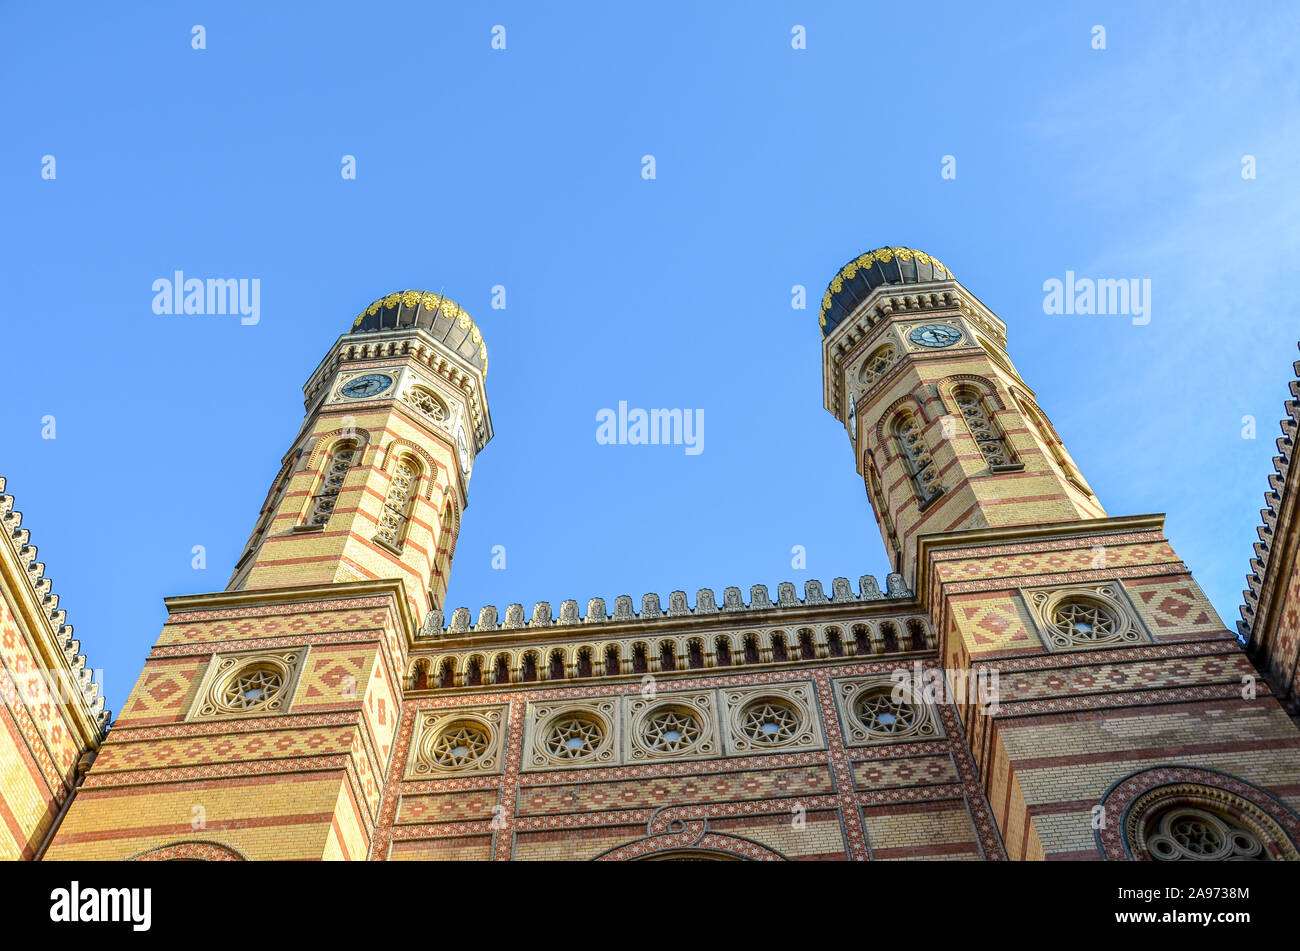 Front side facade of the Great Synagogue in Hungarian Budapest. Dohany Street Synagogue, the largest synagogue in Europe. Centre of Neolog Judaism. Ornamental facade and two onion domes. Tourist spot. Stock Photo